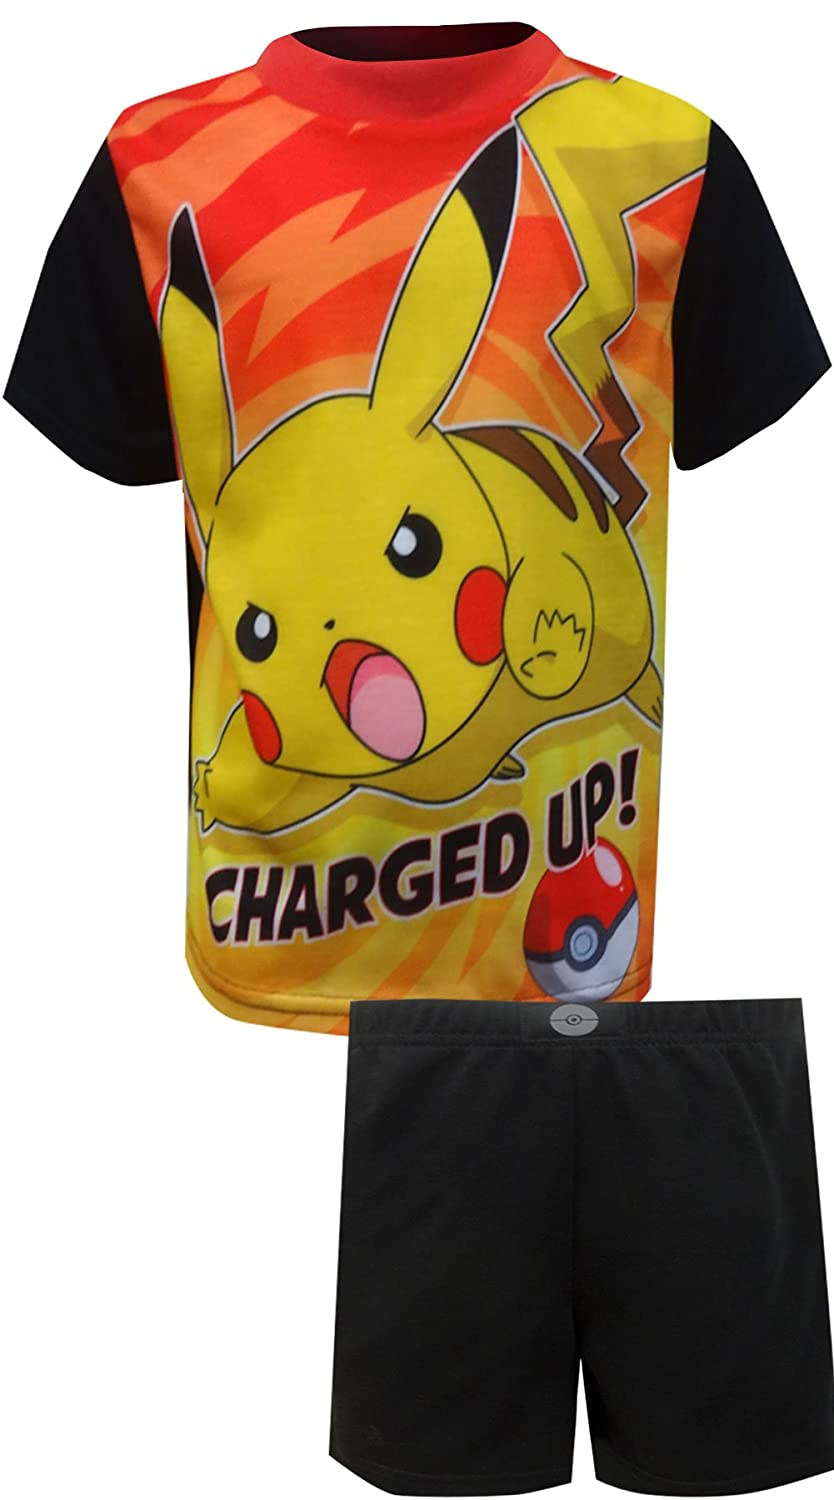 AME Sleepwear Pokemon Pikachu Charged up Pajamas for Little Boys PK136BSS